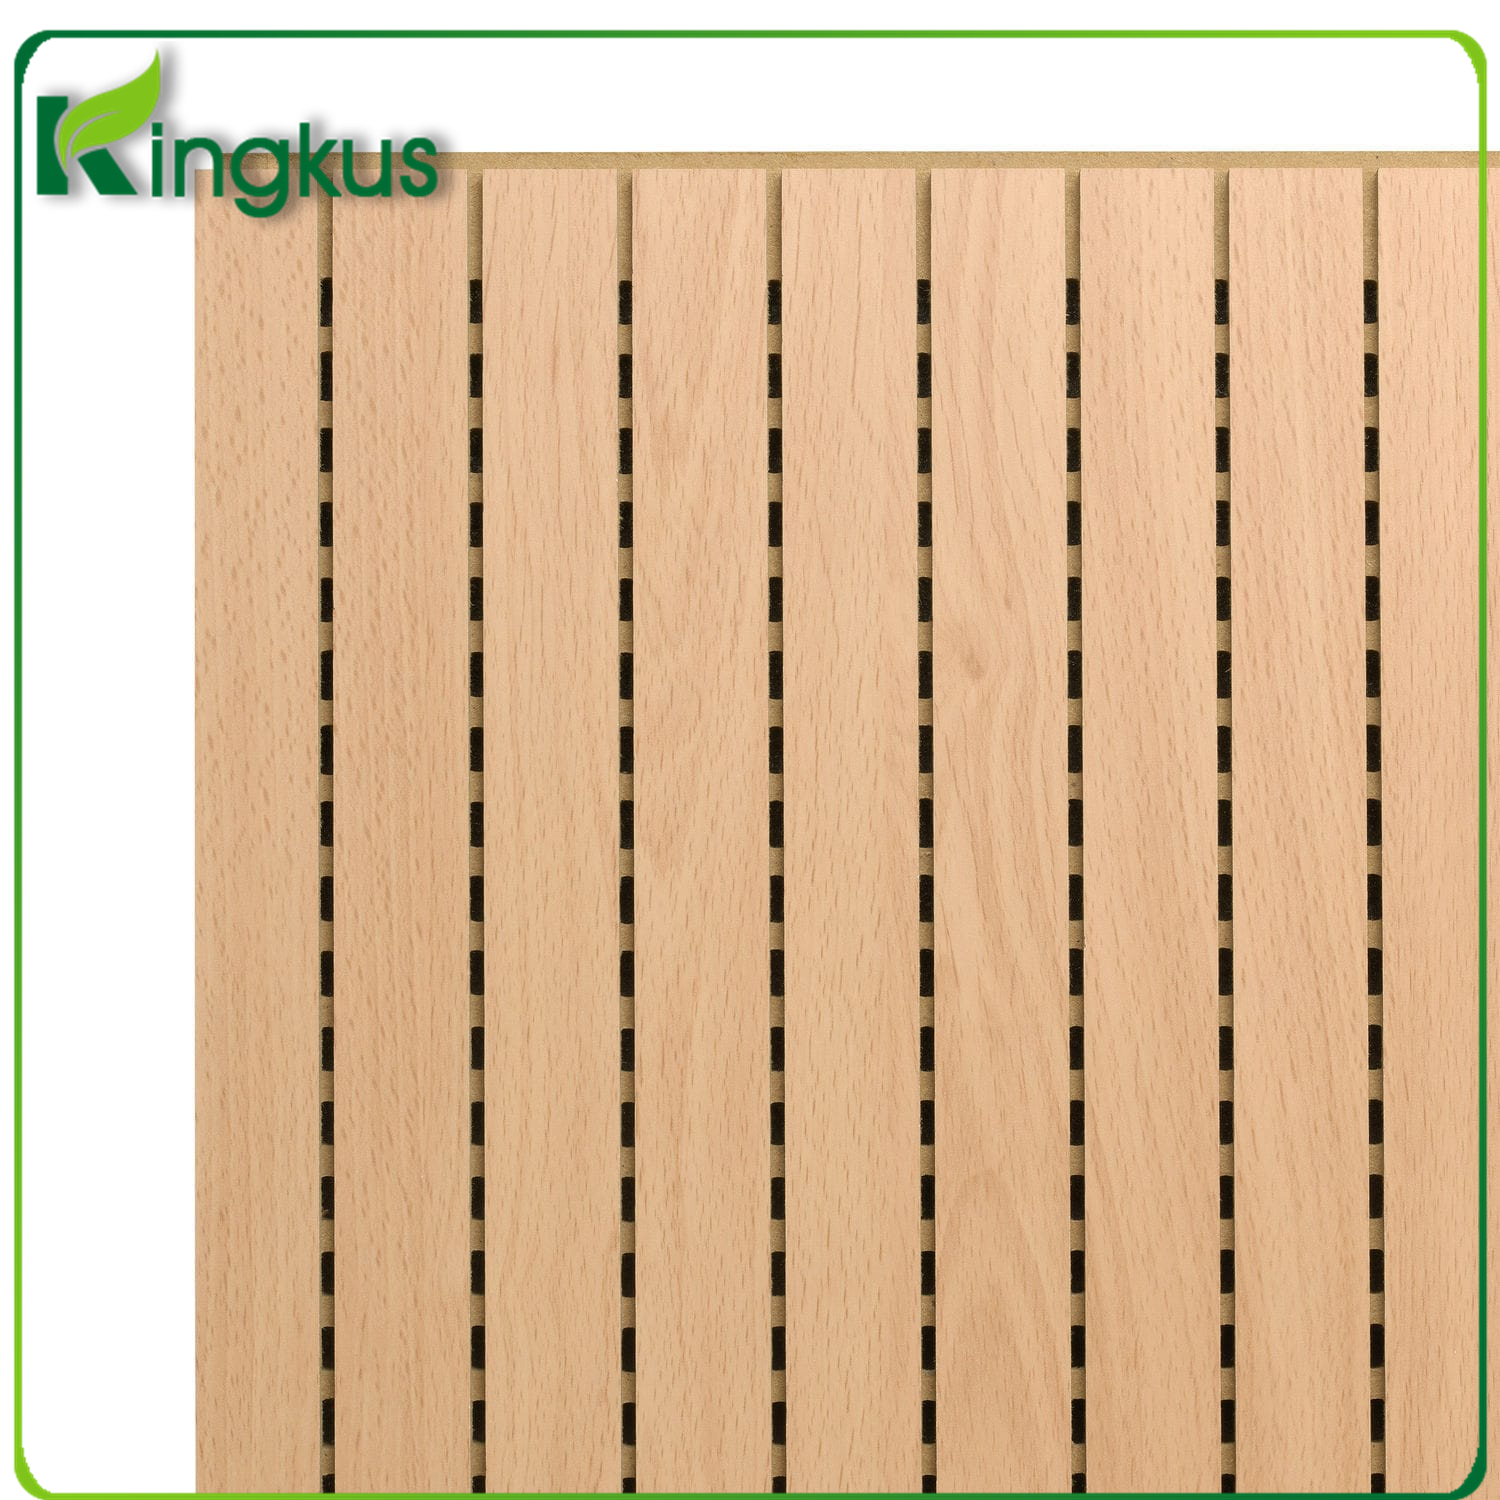 Wooden Perforated Ceiling Board Perforated Board Perforated Acustic Panel Acoustic panel